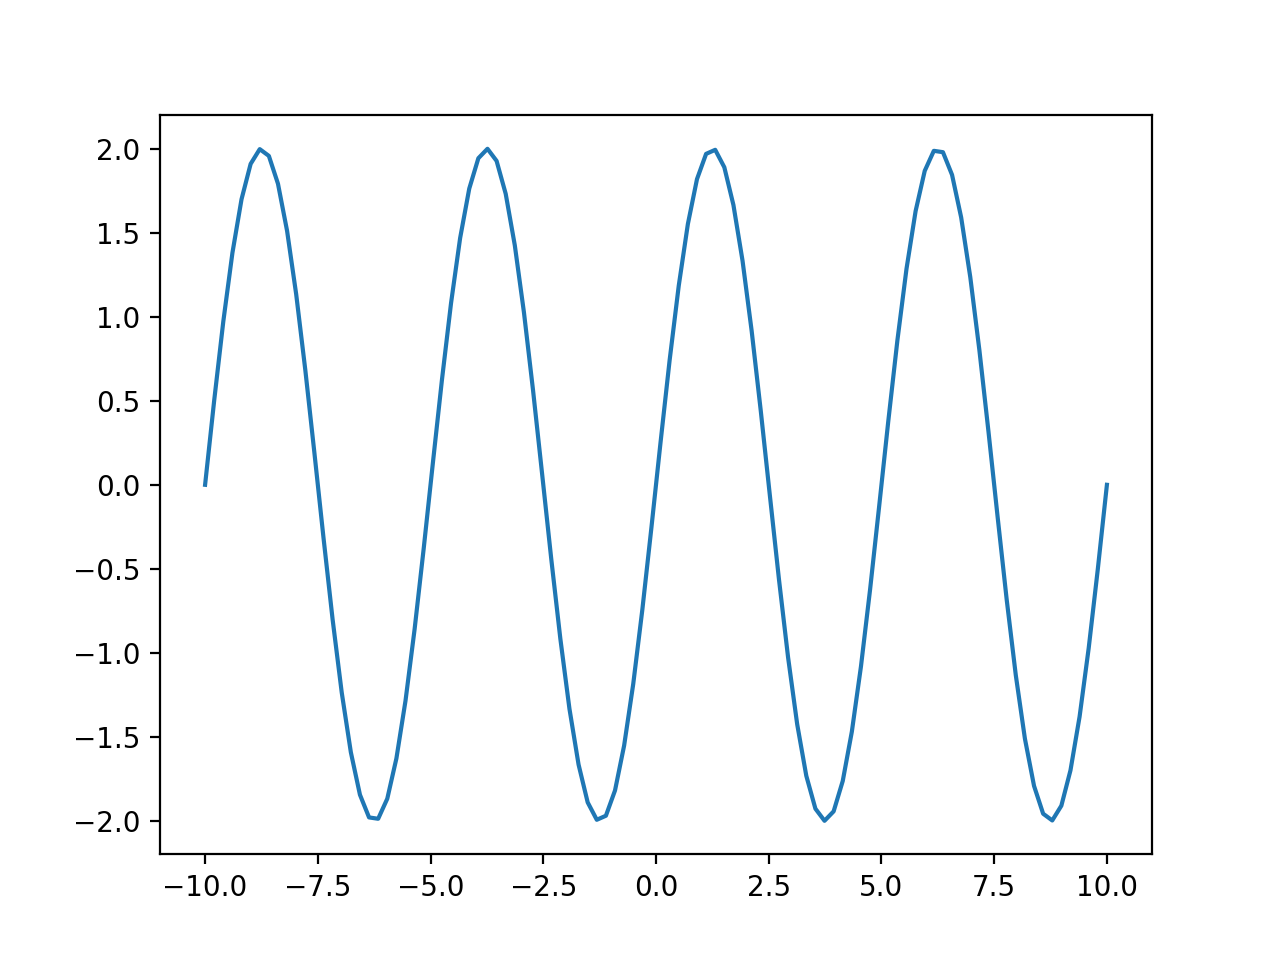 Plot of a Wave with numpy